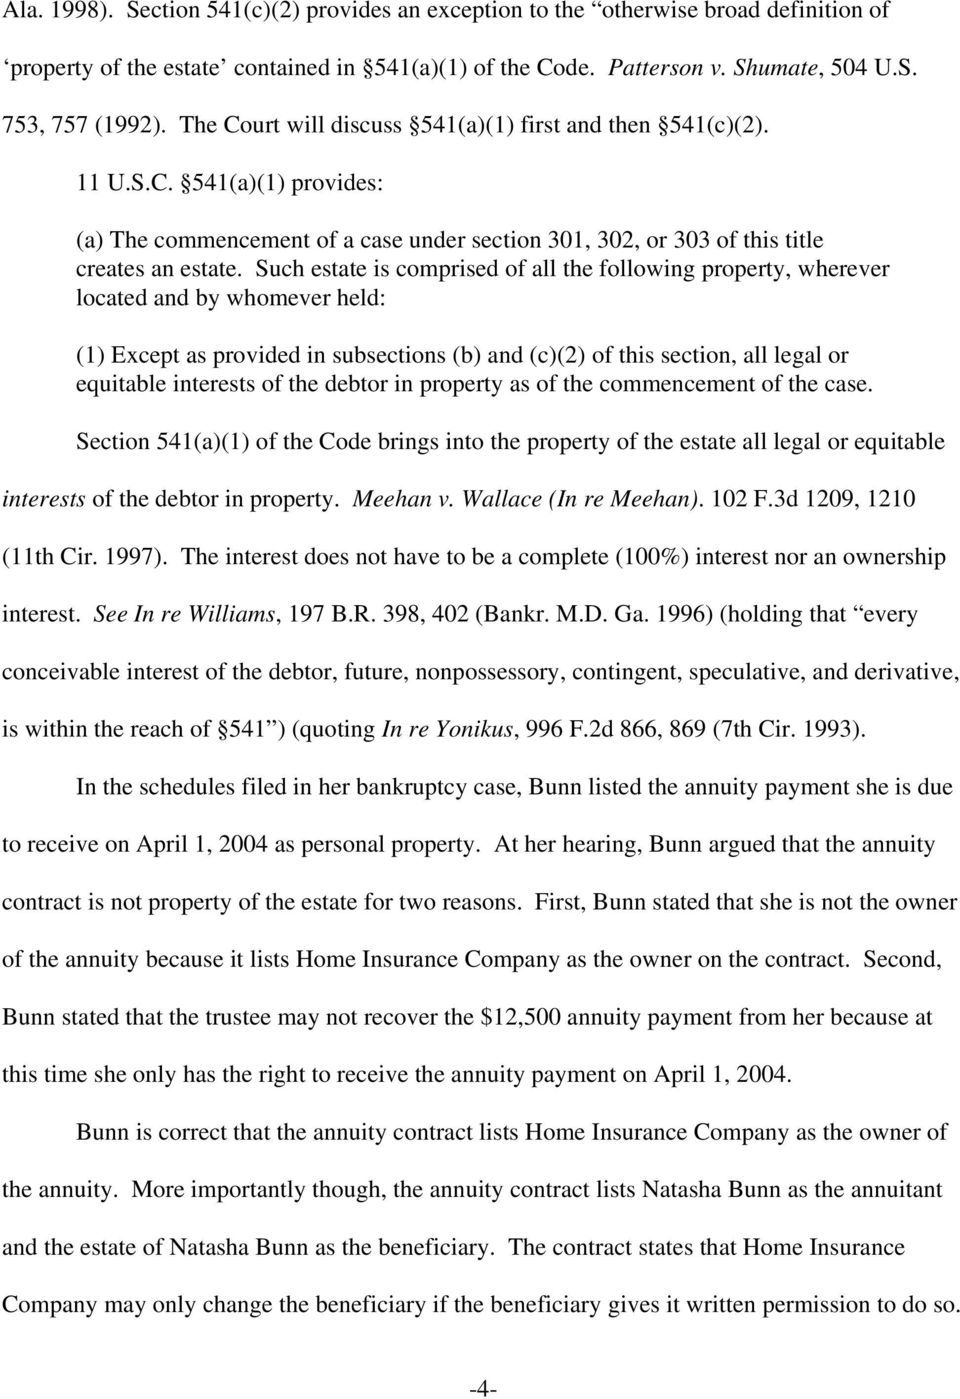 Such estate is comprised of all the following property, wherever located and by whomever held: (1) Except as provided in subsections (b) and (c)(2) of this section, all legal or equitable interests